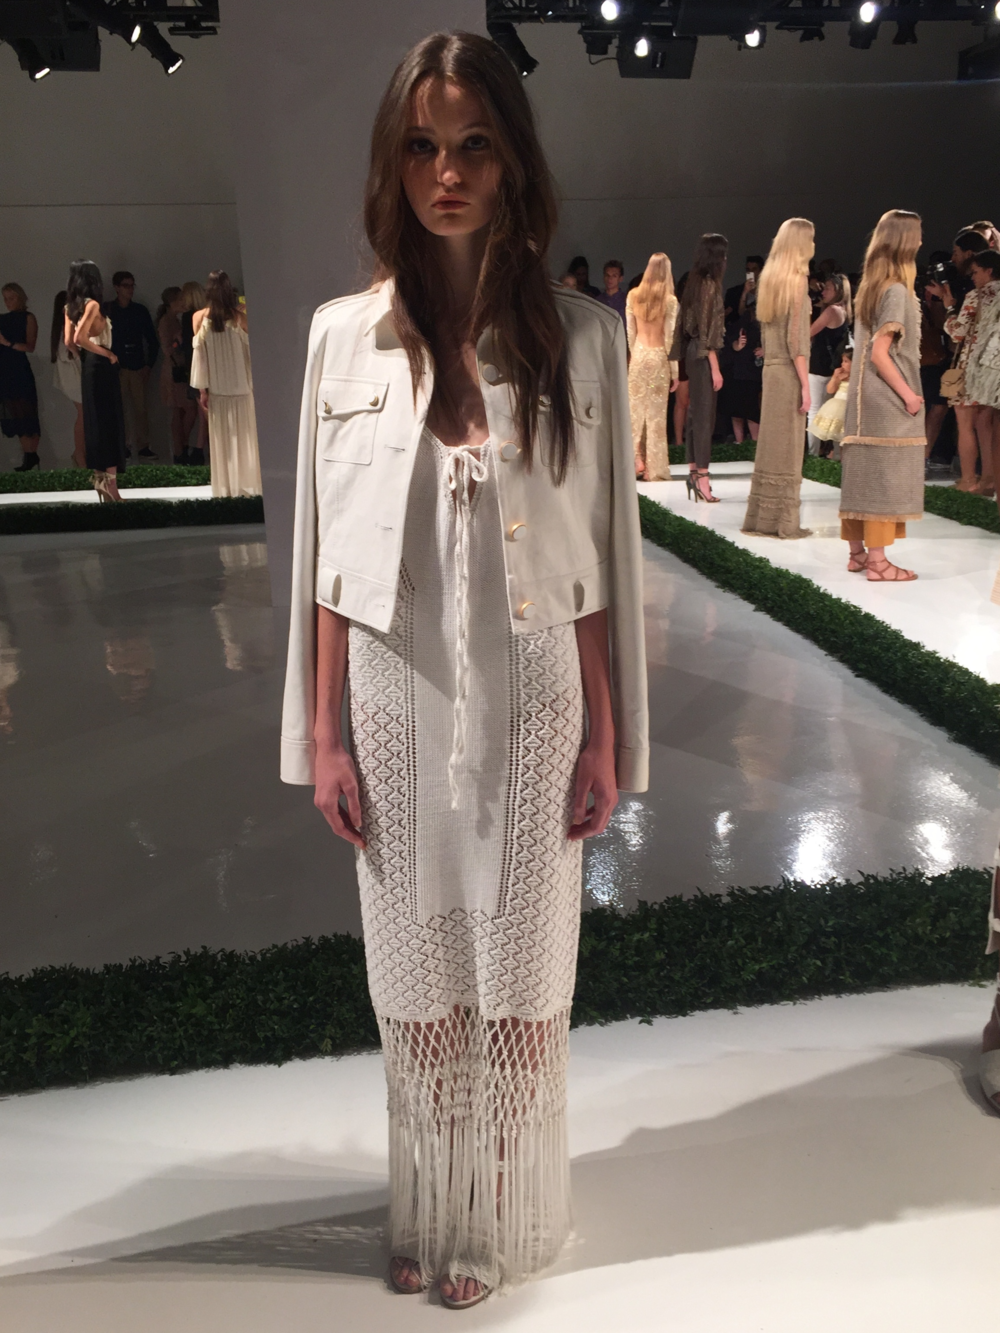 rachel_Zoe_white_fringe_dress